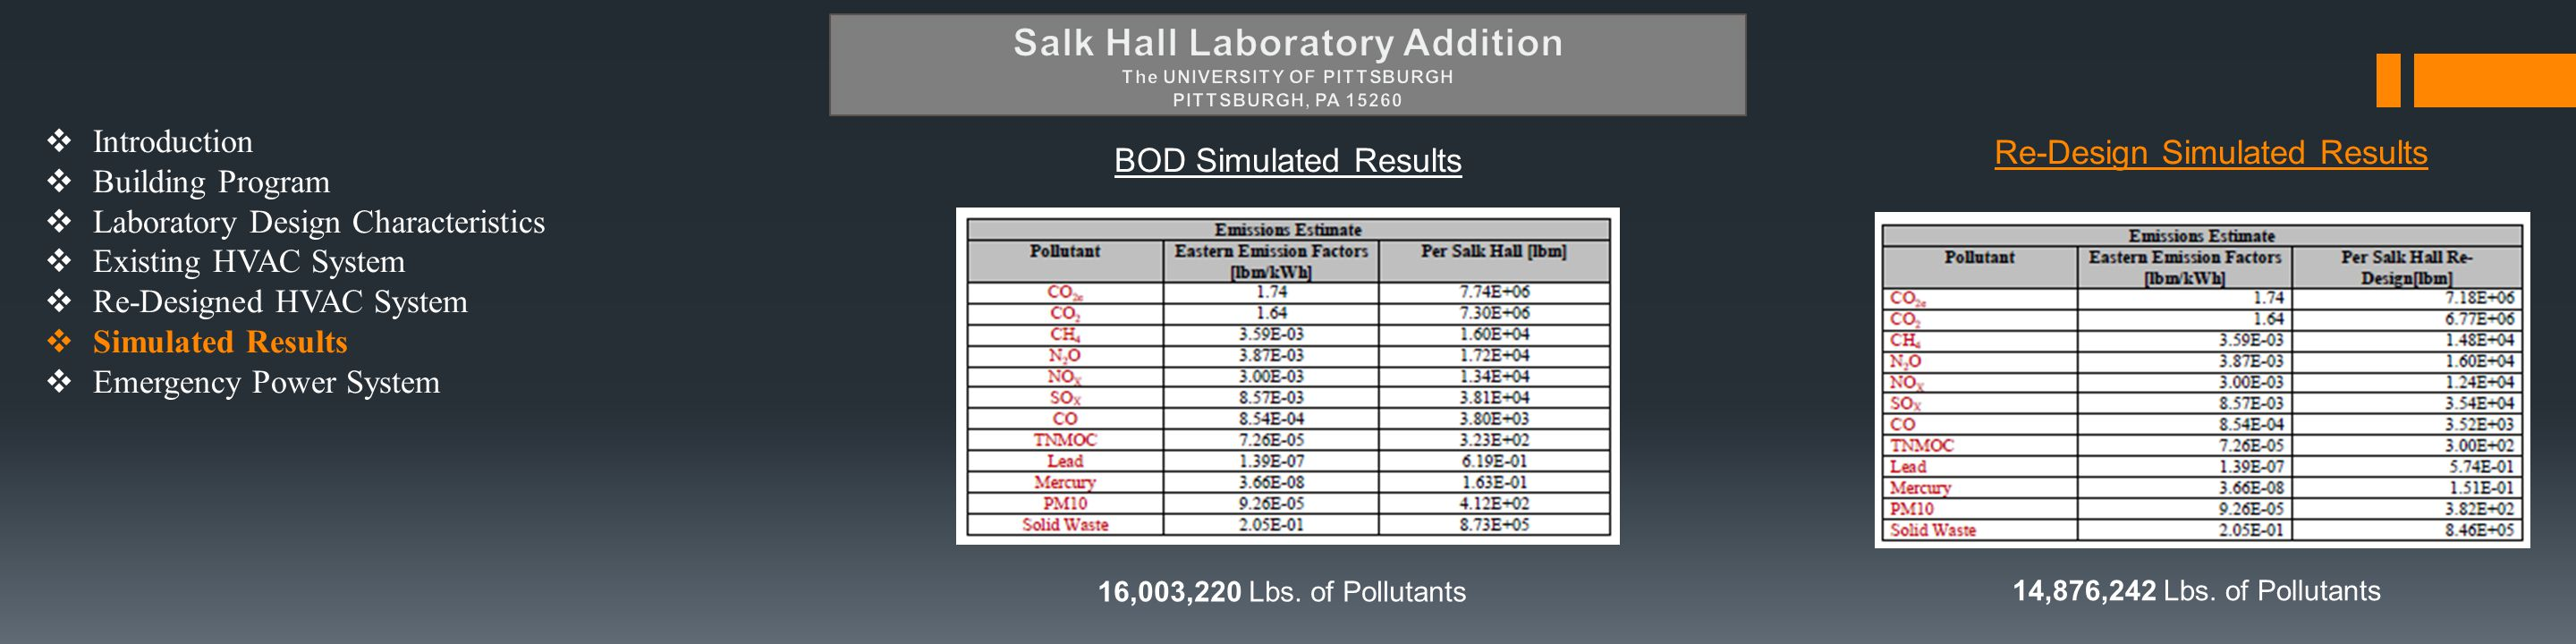  Introduction  Building Program  Laboratory Design Characteristics  Existing HVAC System  Re-Designed HVAC System  Simulated Results  Emergency Power System Re-Design Simulated Results 14,876,242 Lbs.